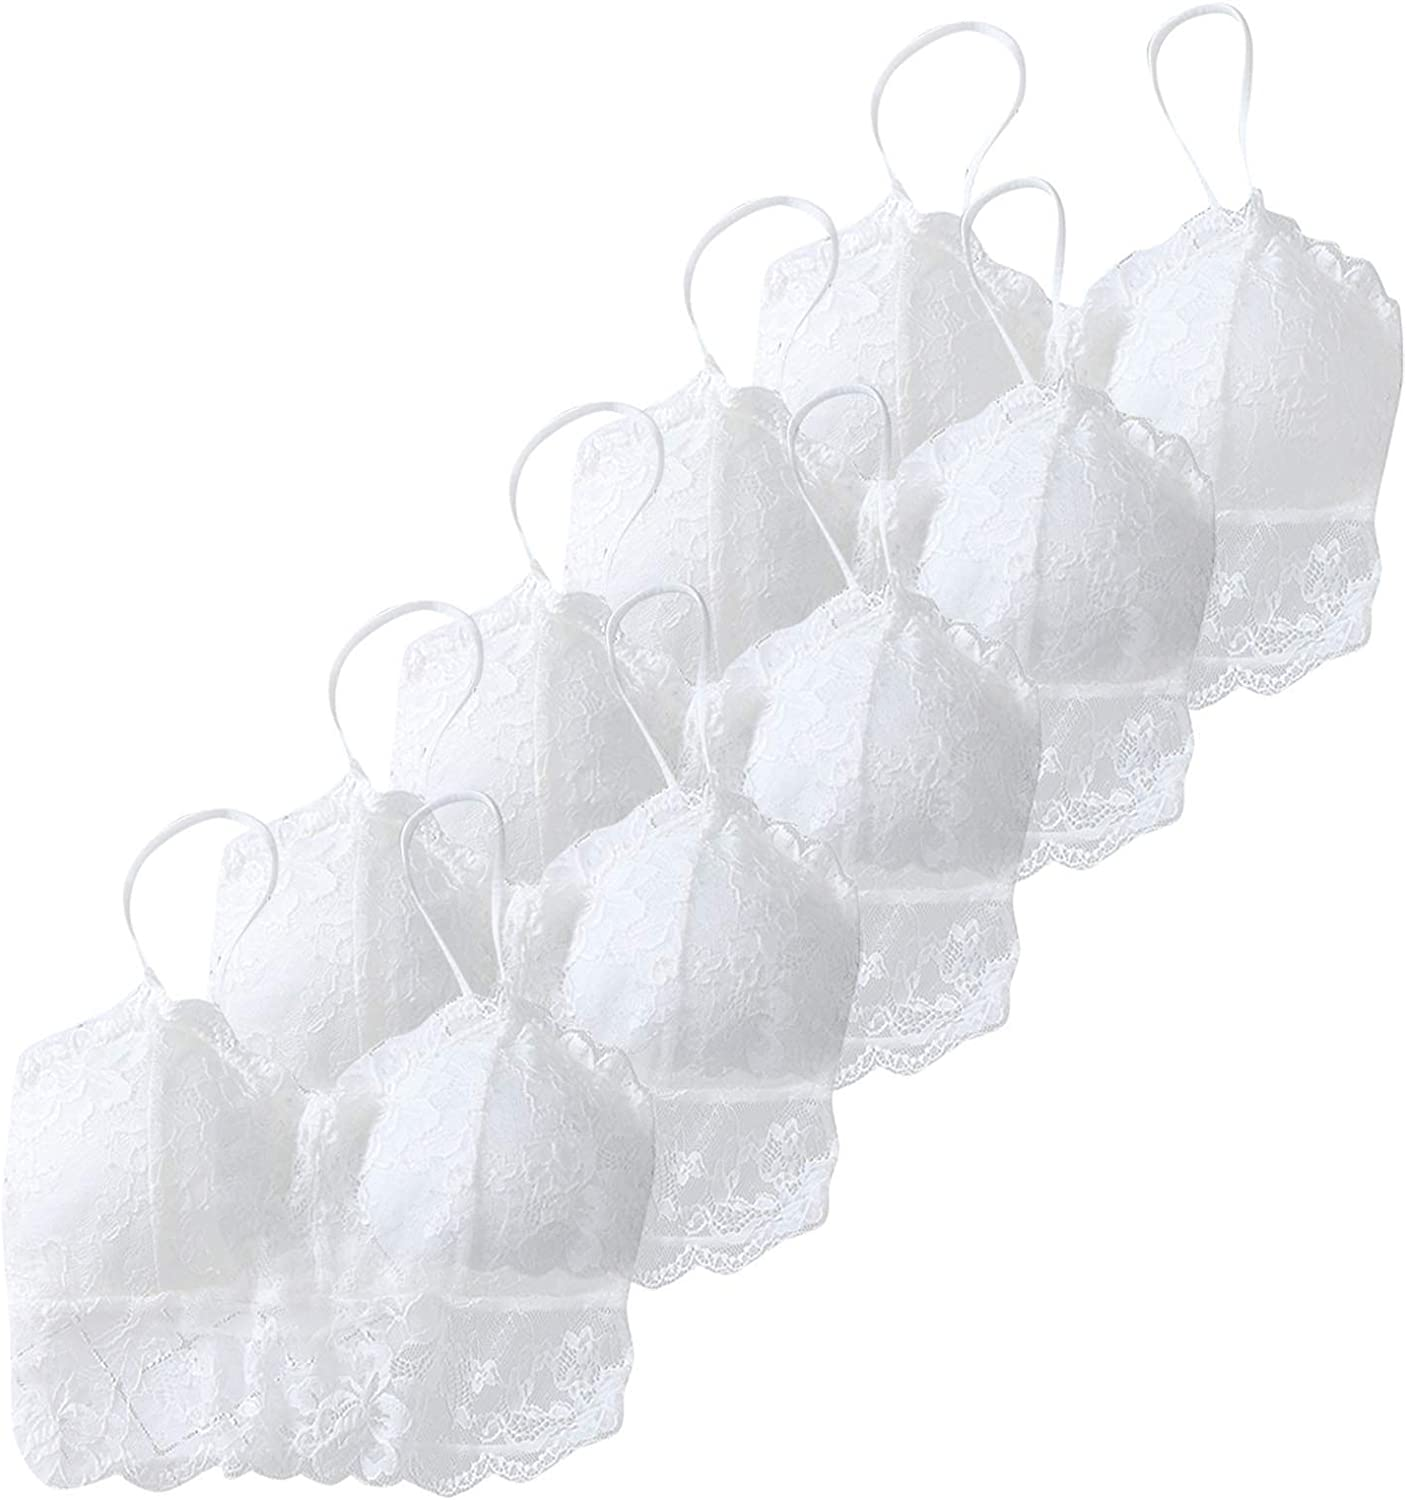 Women Girls Lace Seamless Wirefree Padded Bralettes Bra Sports Cami Everyday Bras with Straps 5 Pcs